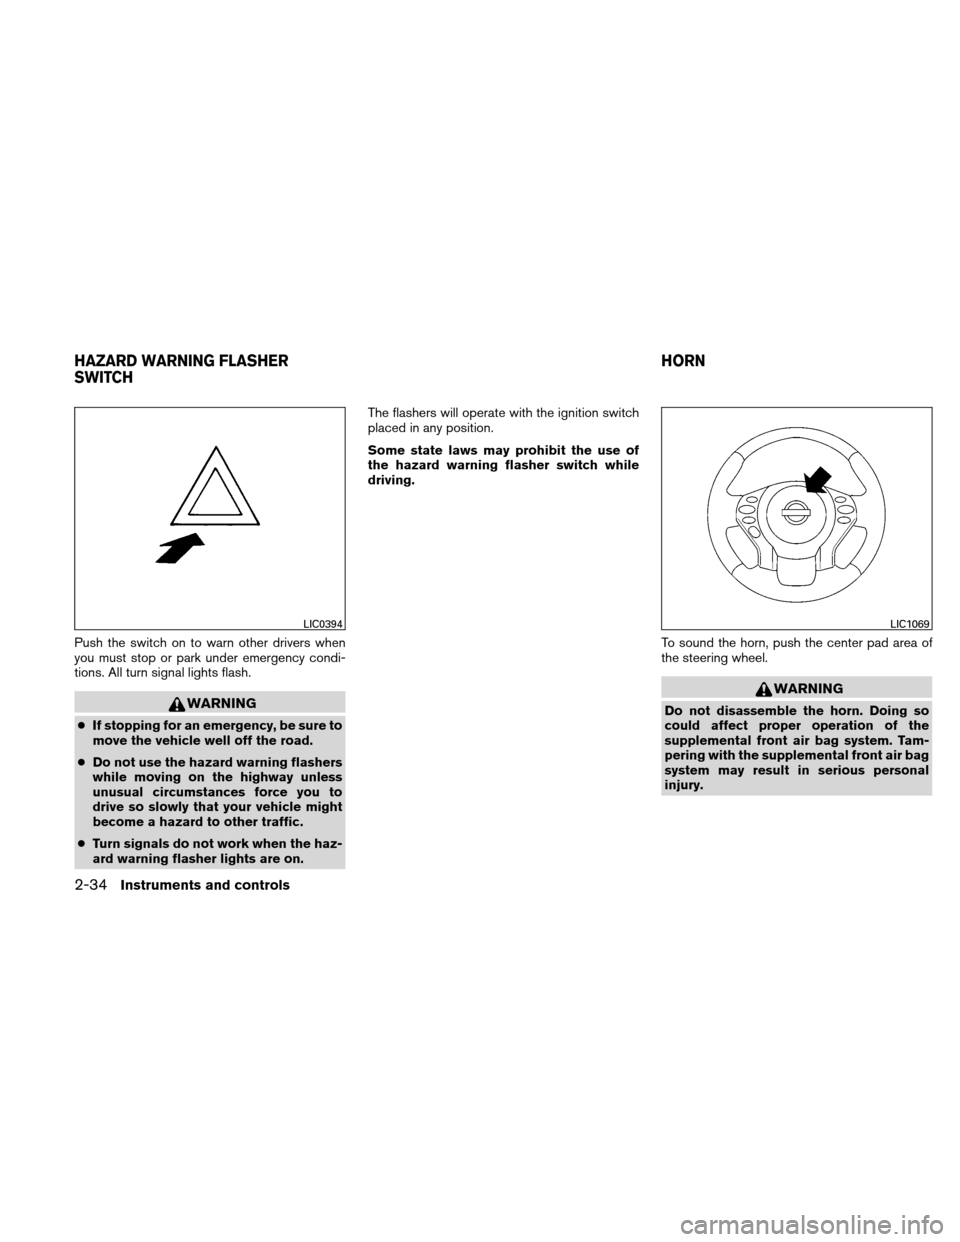 NISSAN ALTIMA HYBRID 2011 L32A / 4.G Owners Manual, Page 115